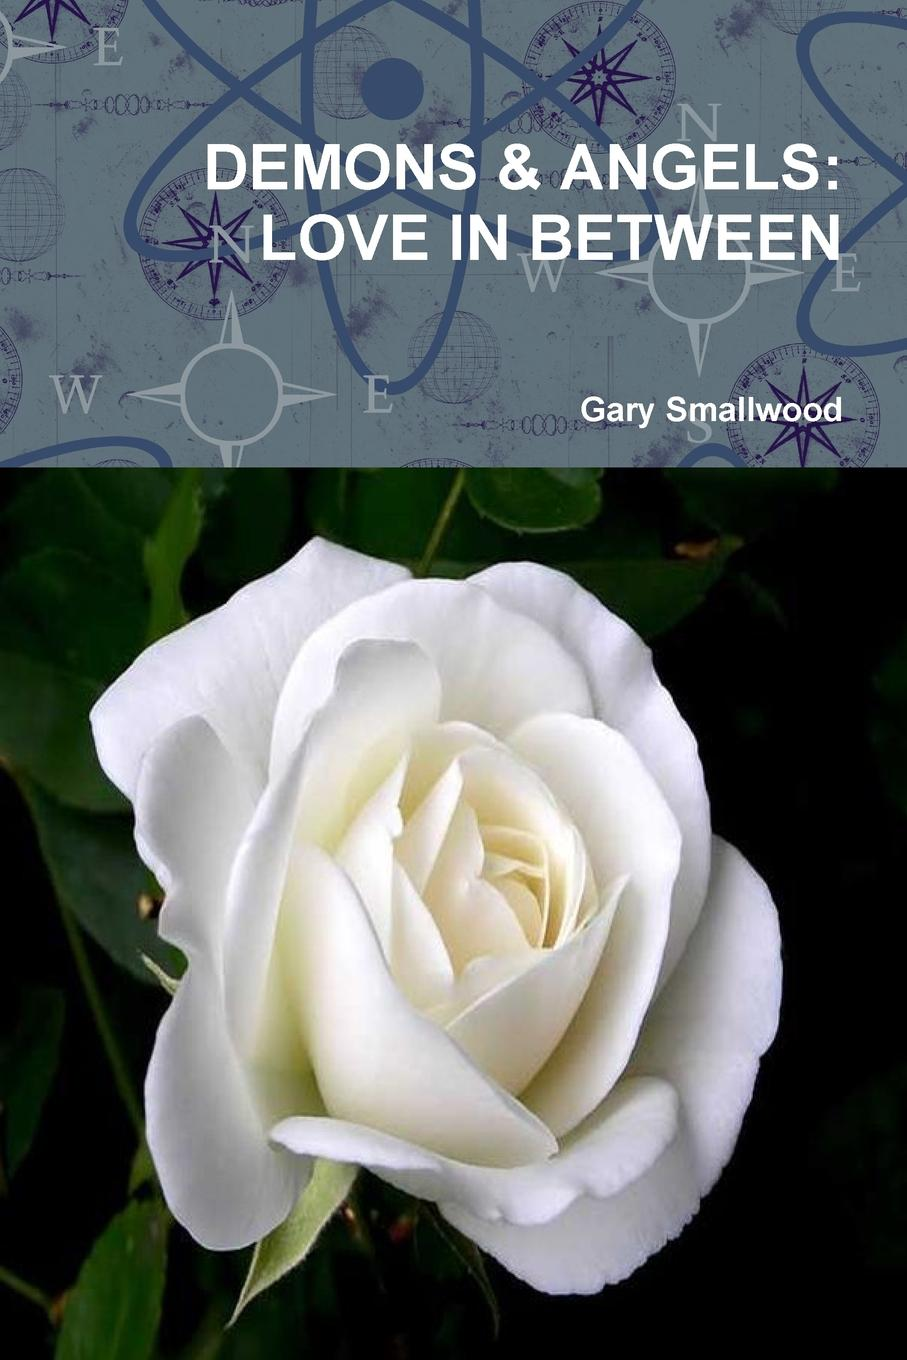 Gary Smallwood DEMONS . ANGELS. LOVE IN BETWEEN between self and others